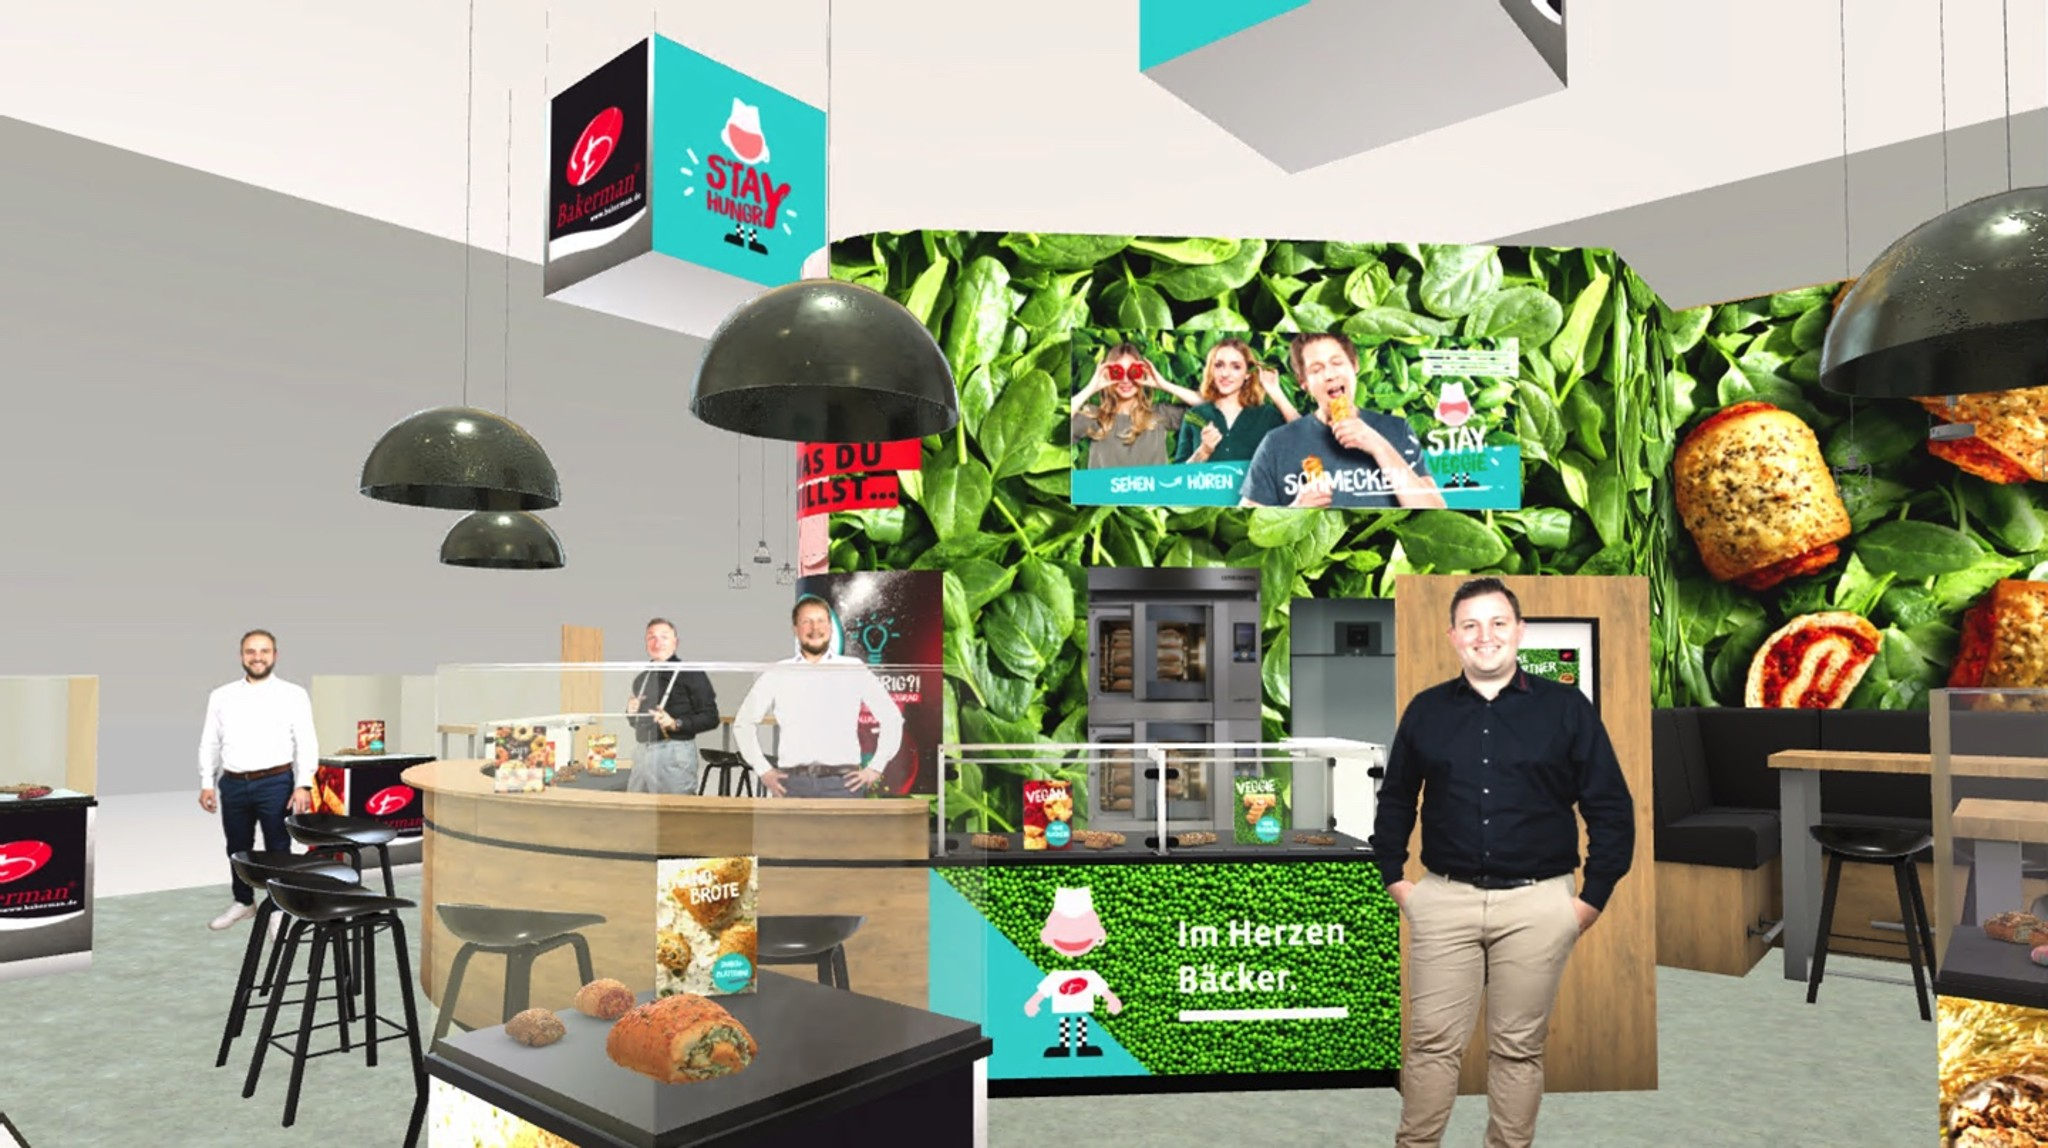 Virtual exhibition stand with product visualizations